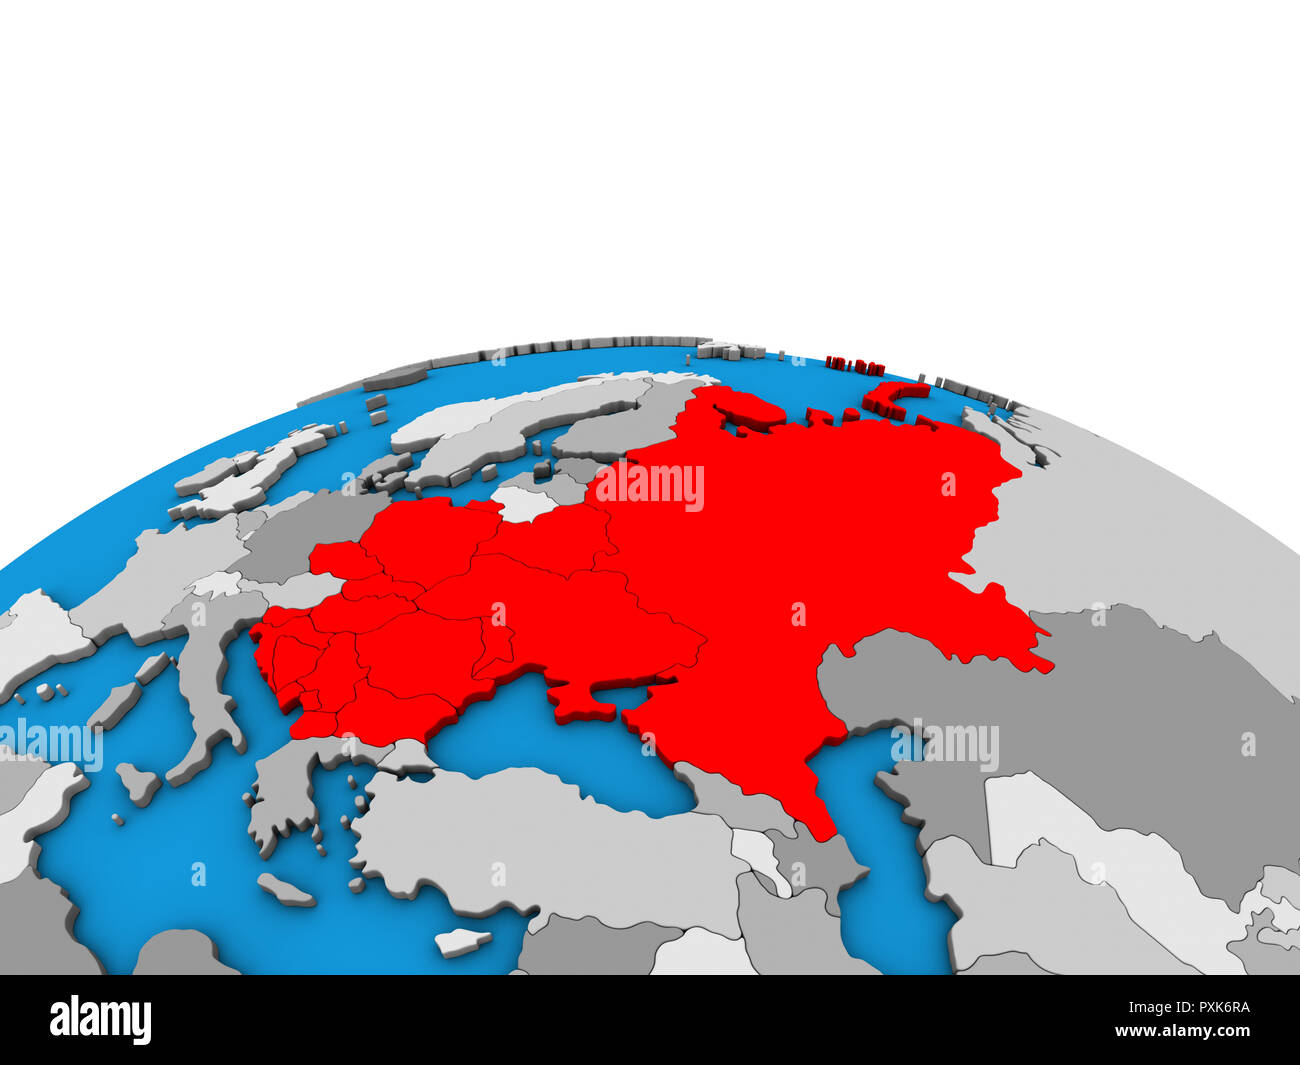 Eastern Europe on political 3D globe. 3D illustration Stock ... on topological map of eastern europe, geography map of eastern europe, geopolitical map of central europe, geological map of eastern europe, tactical map of eastern europe, history map of eastern europe, ethnic map of eastern europe, ecological map of eastern europe, strategic map of eastern europe,